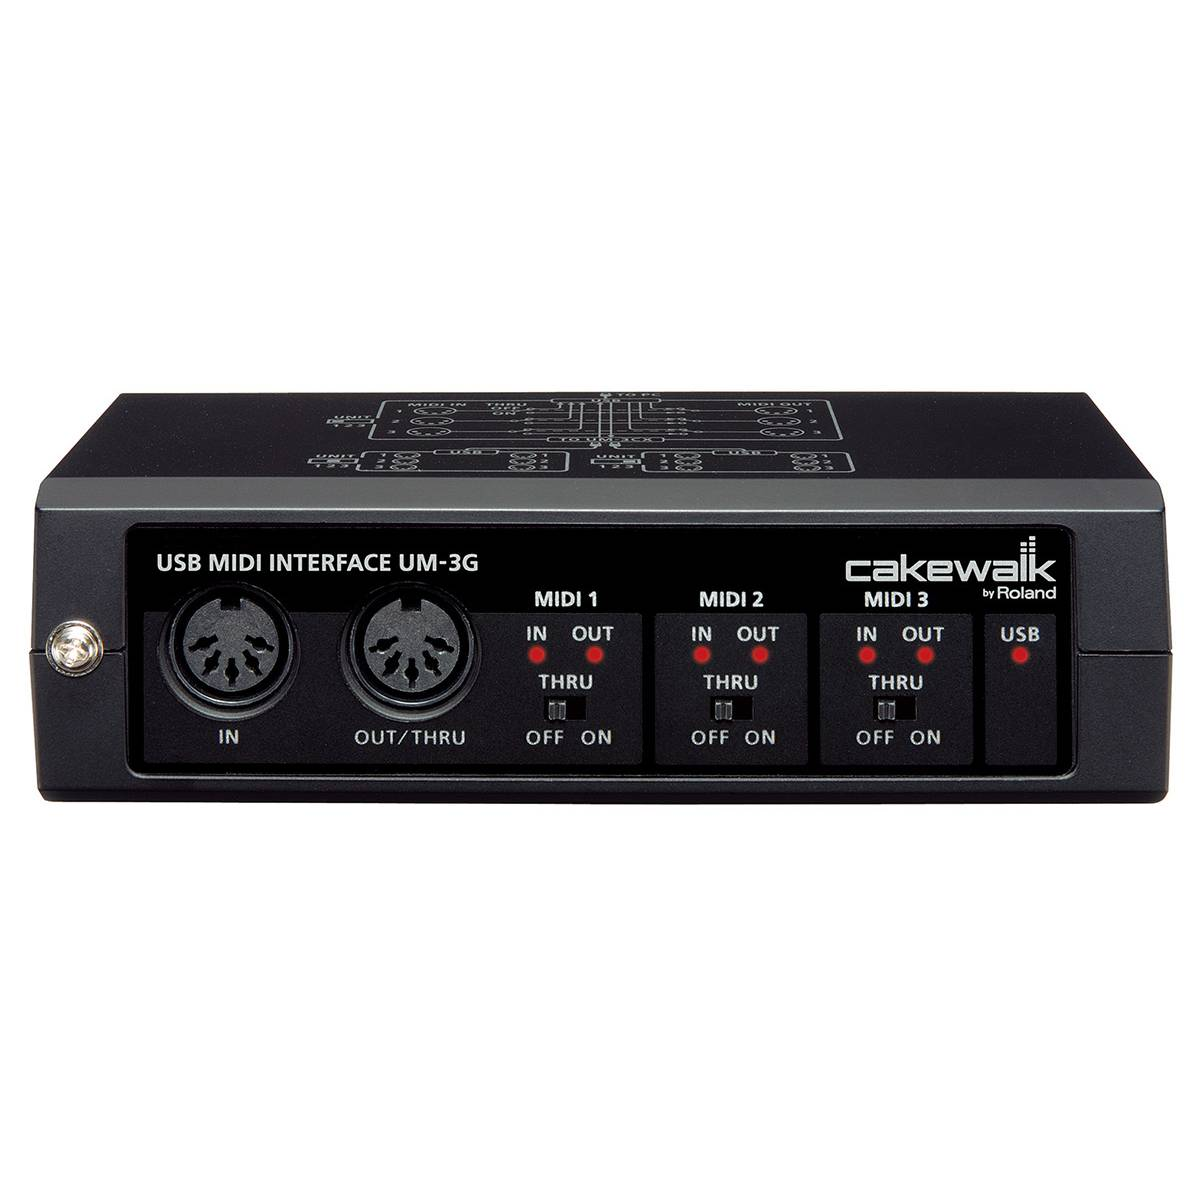 cakewalk um 3g usb midi interface midi interfaces from inta audio uk. Black Bedroom Furniture Sets. Home Design Ideas